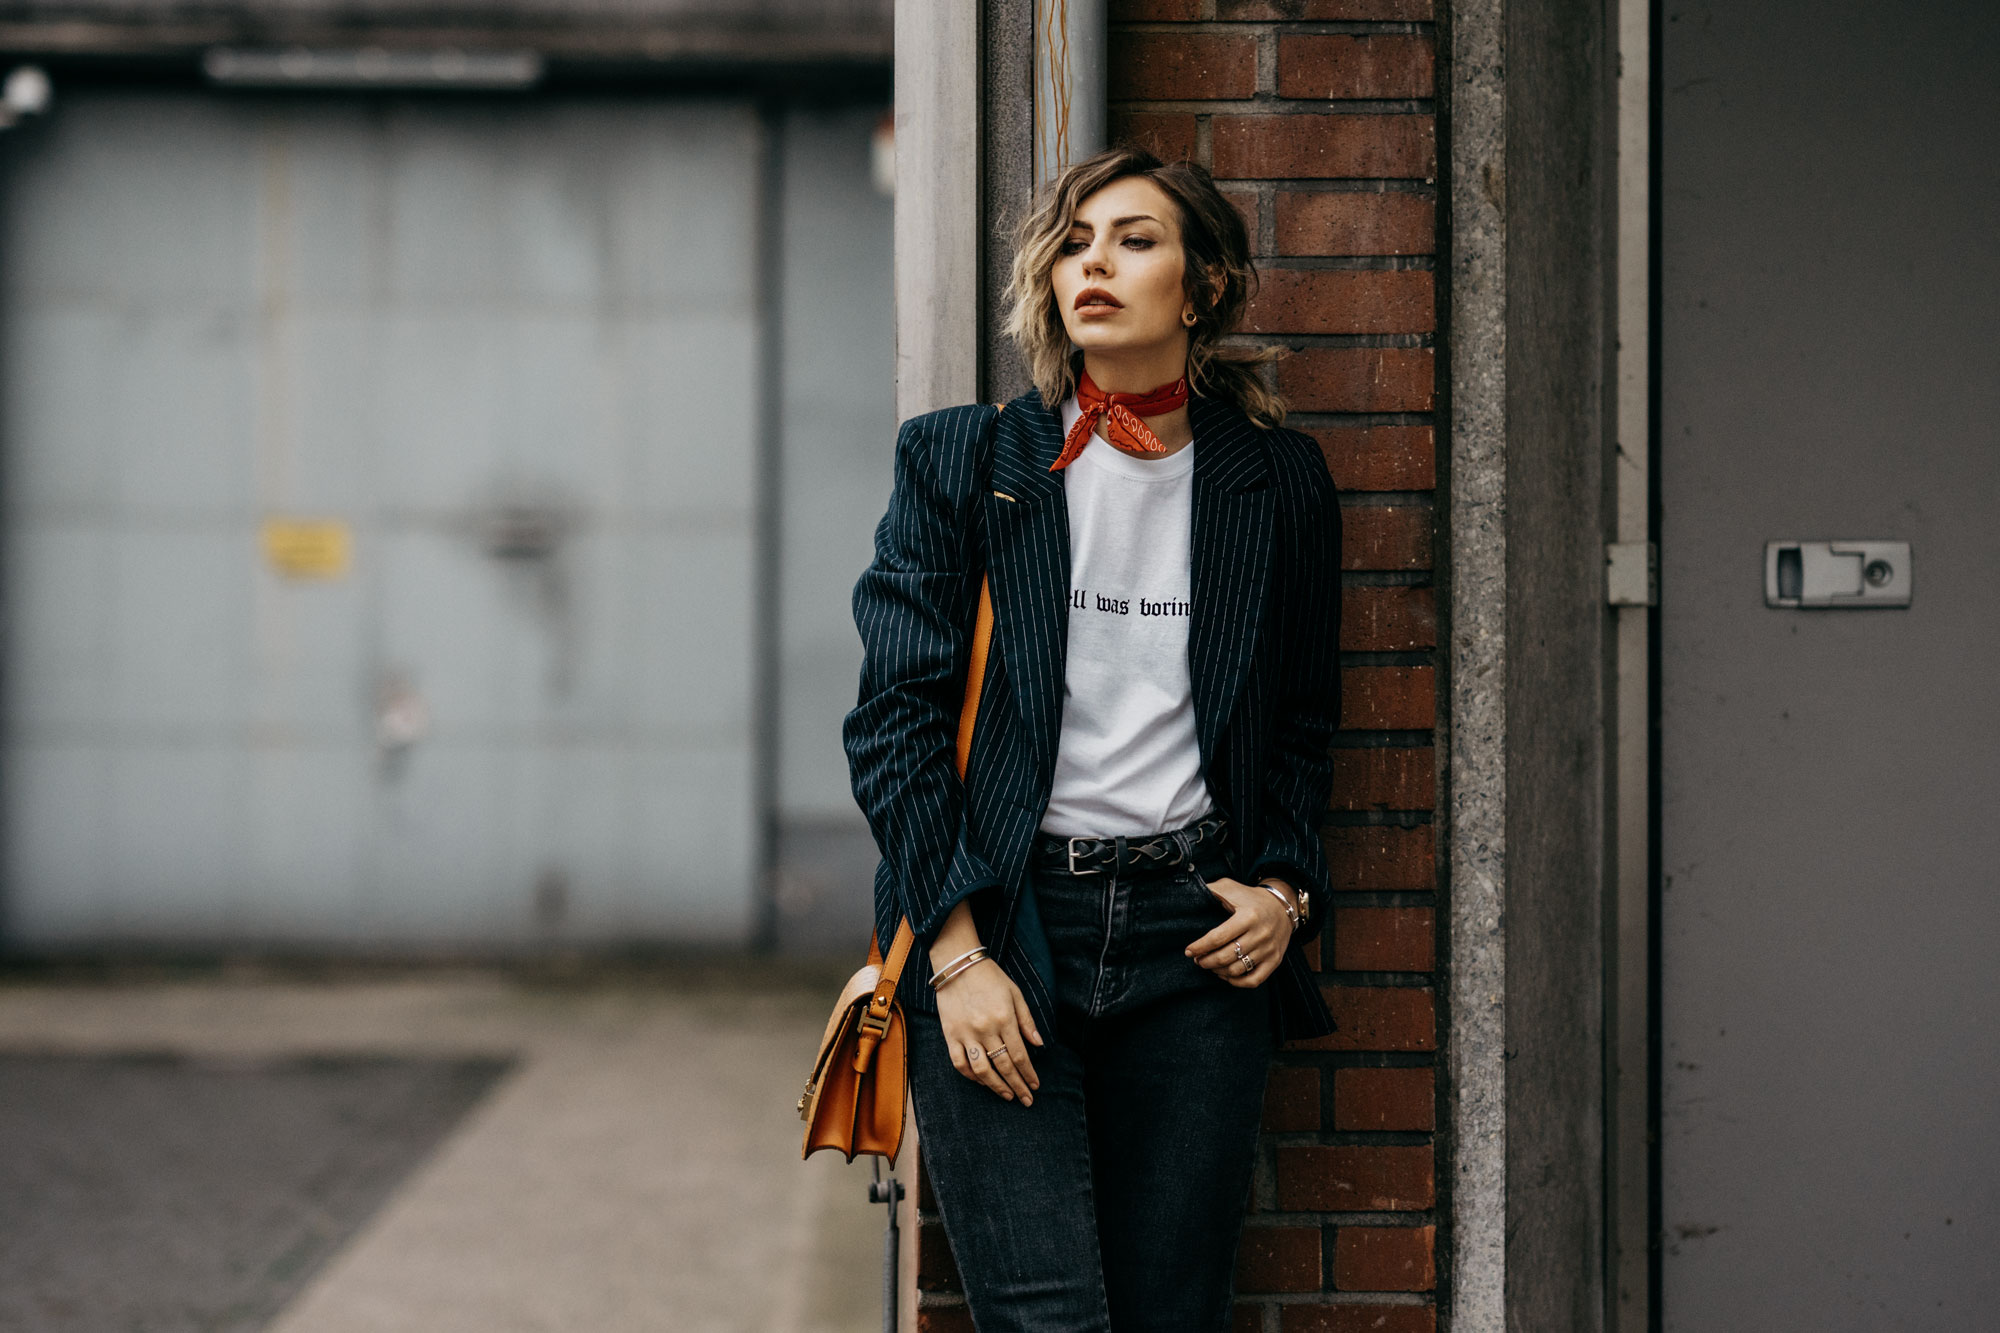 How to combine a statement shirt | outfit inspiration | style: effortless, Zara, basic, cool, MCM bag, bandana, edgy, grunge, scandinavian